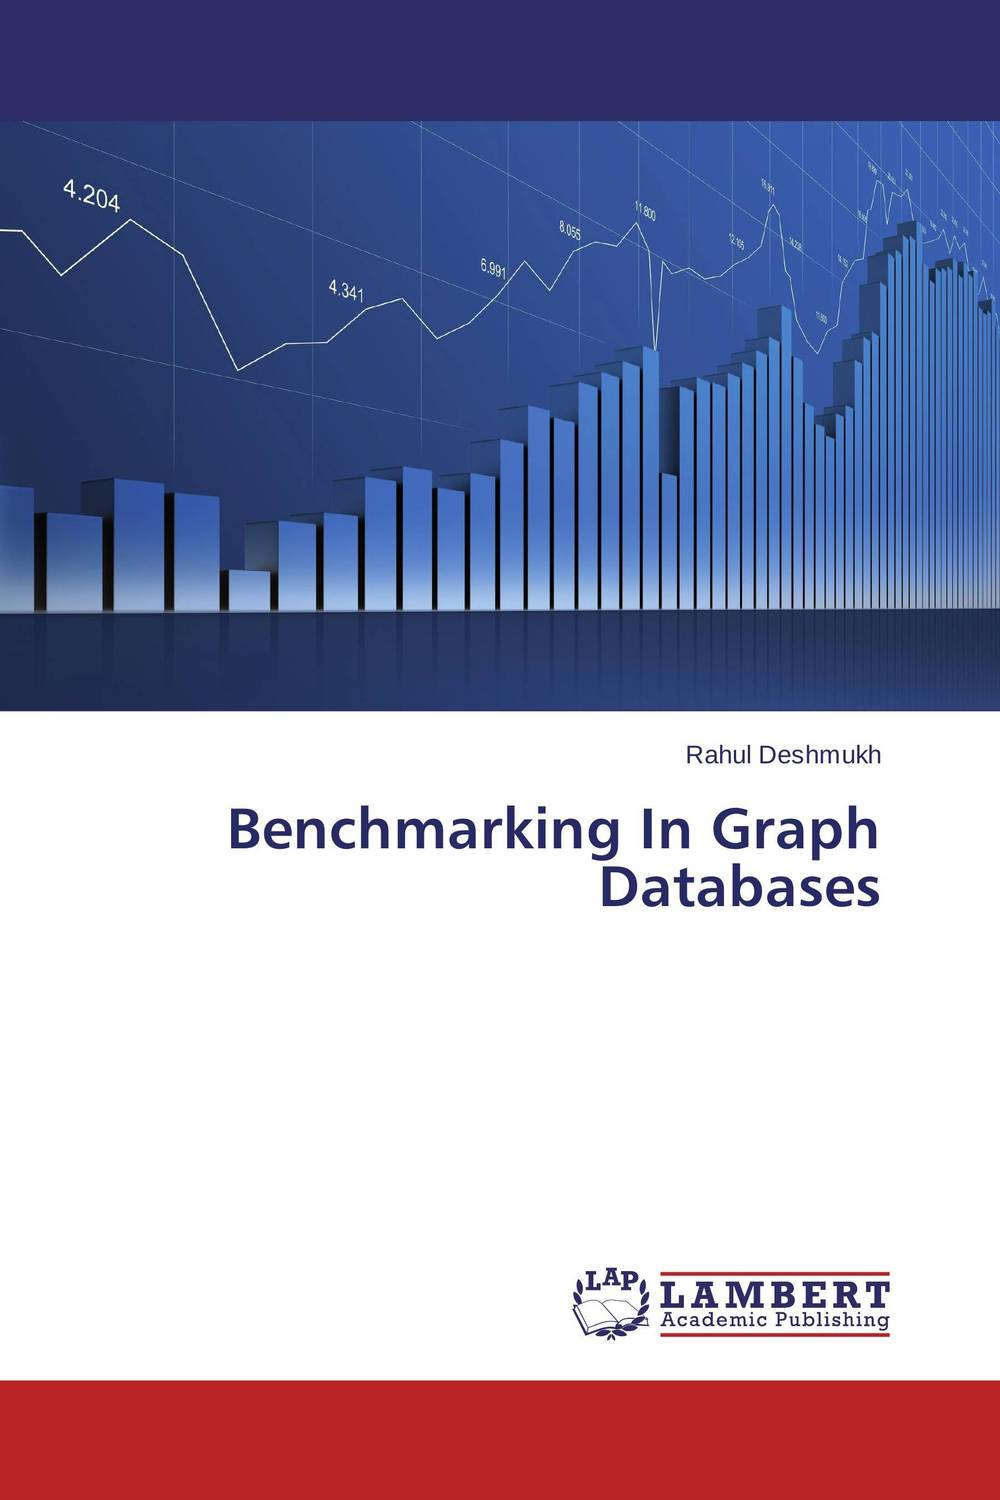 Benchmarking In Graph Databases the transaction graph